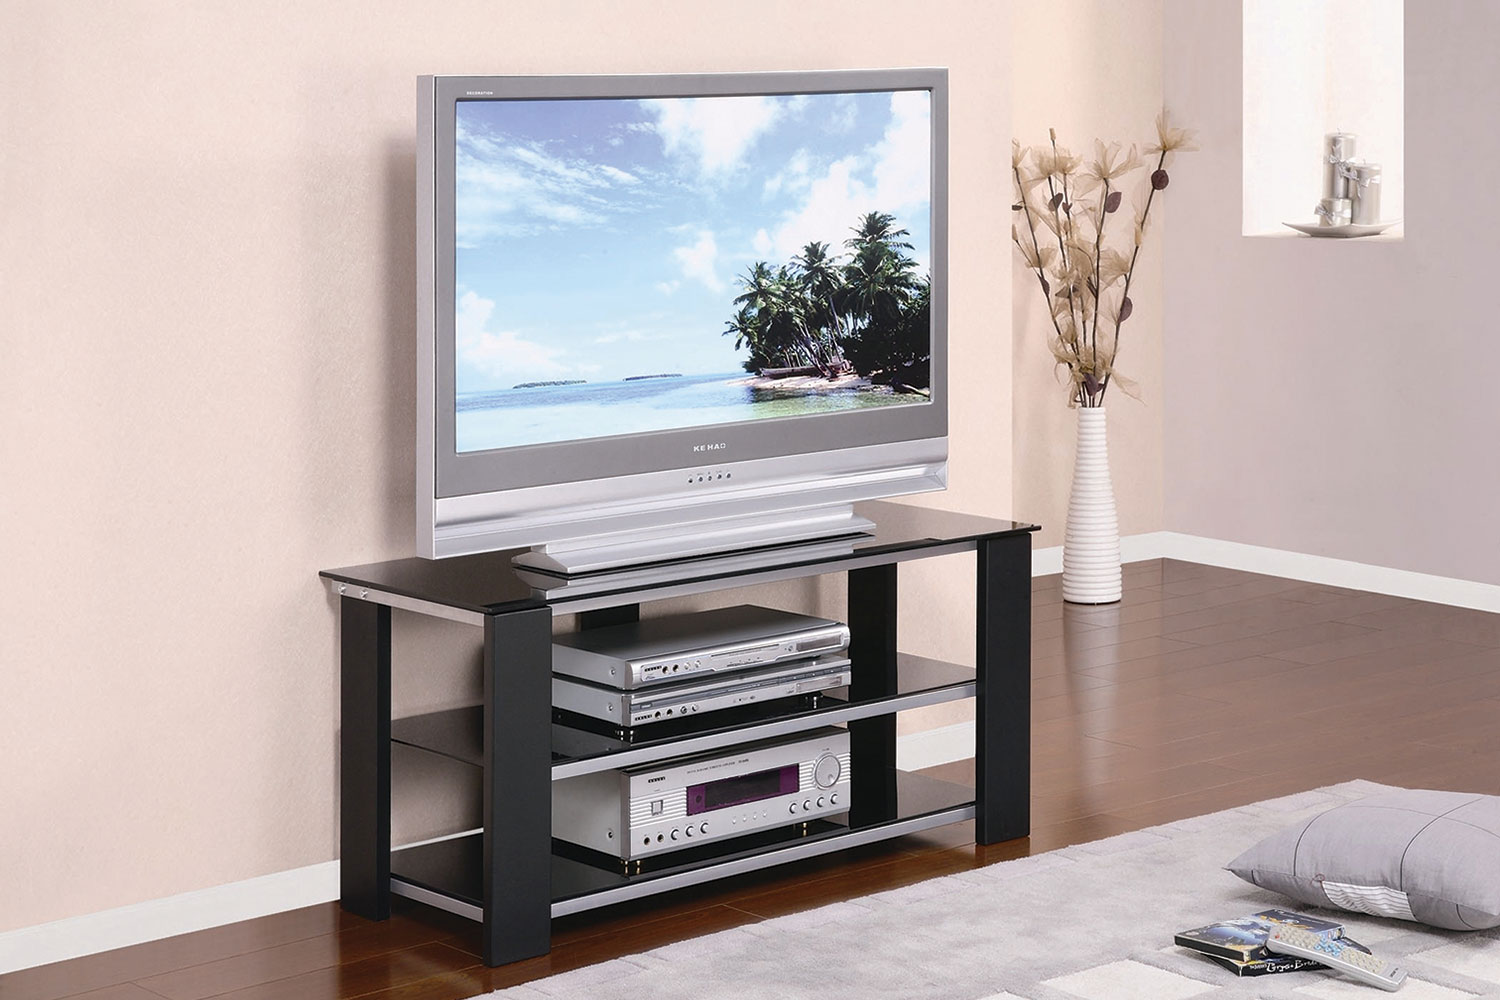 40 Tv Stand With Tempered Glass Top Black Metal